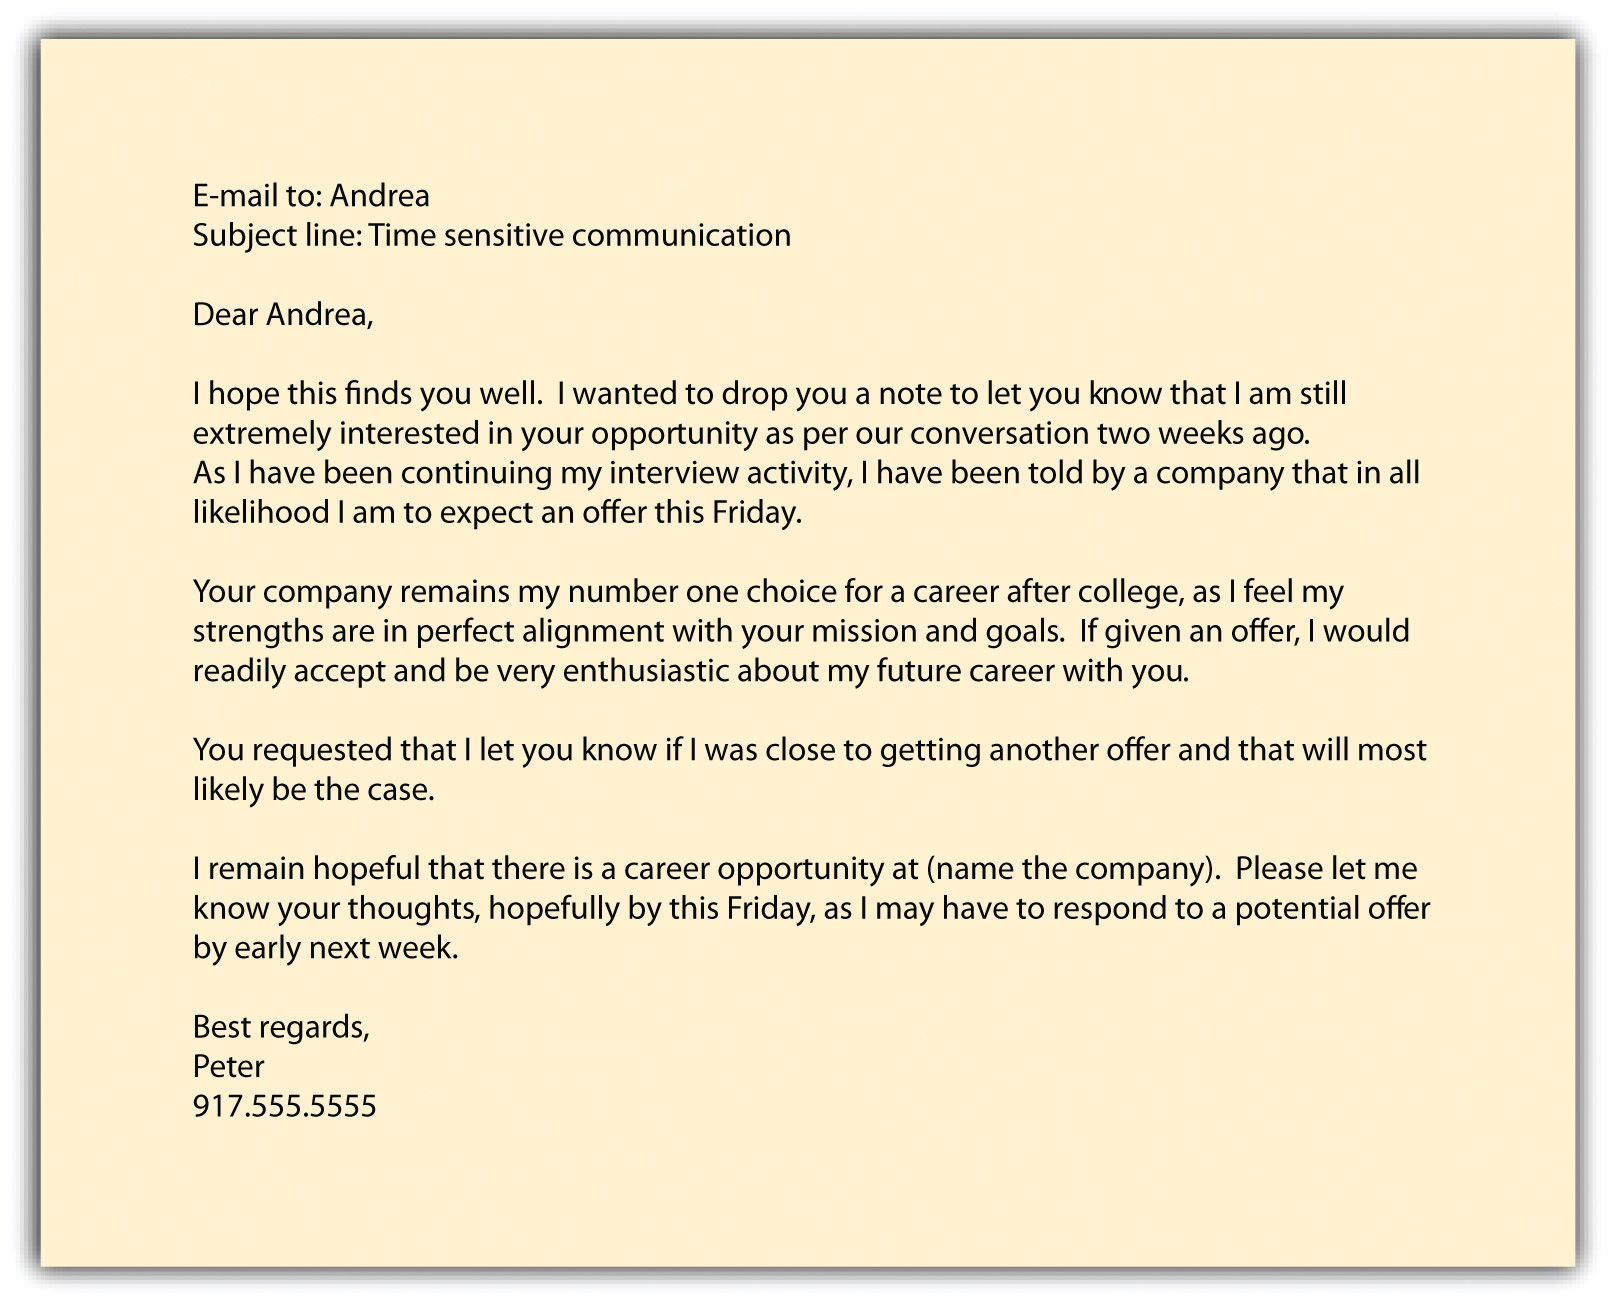 sample letter of decline job offer due to salary cover letter step 6 negotiate and close your offer how to turn down a job offer sample letter and decision making